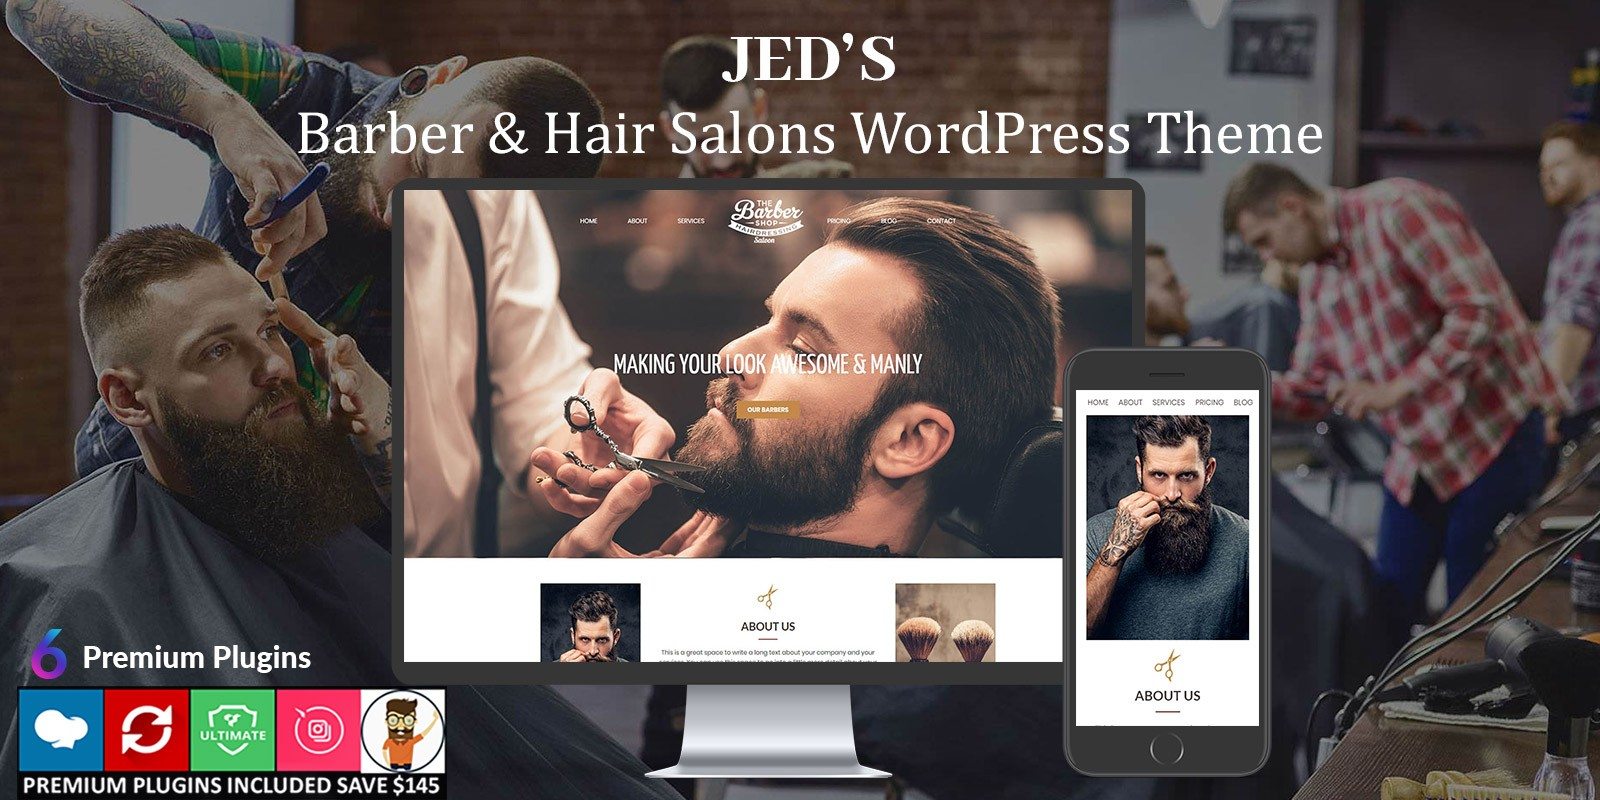 Jeds – Barber And Hair Salon WordPress Theme